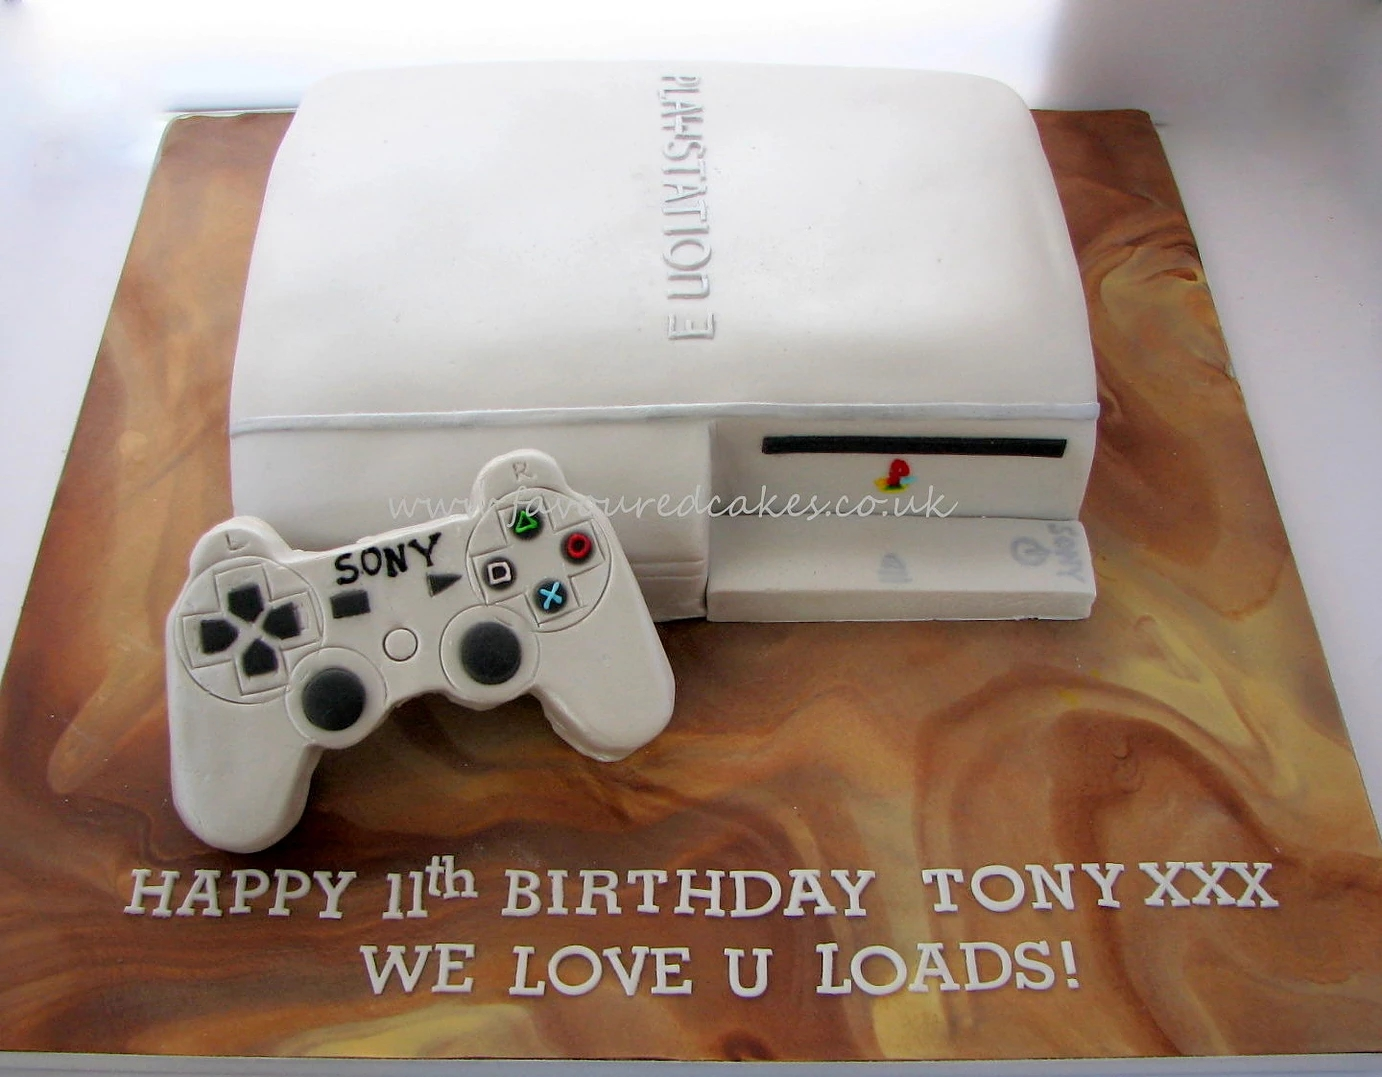 Playstation Cake - Silver PS01